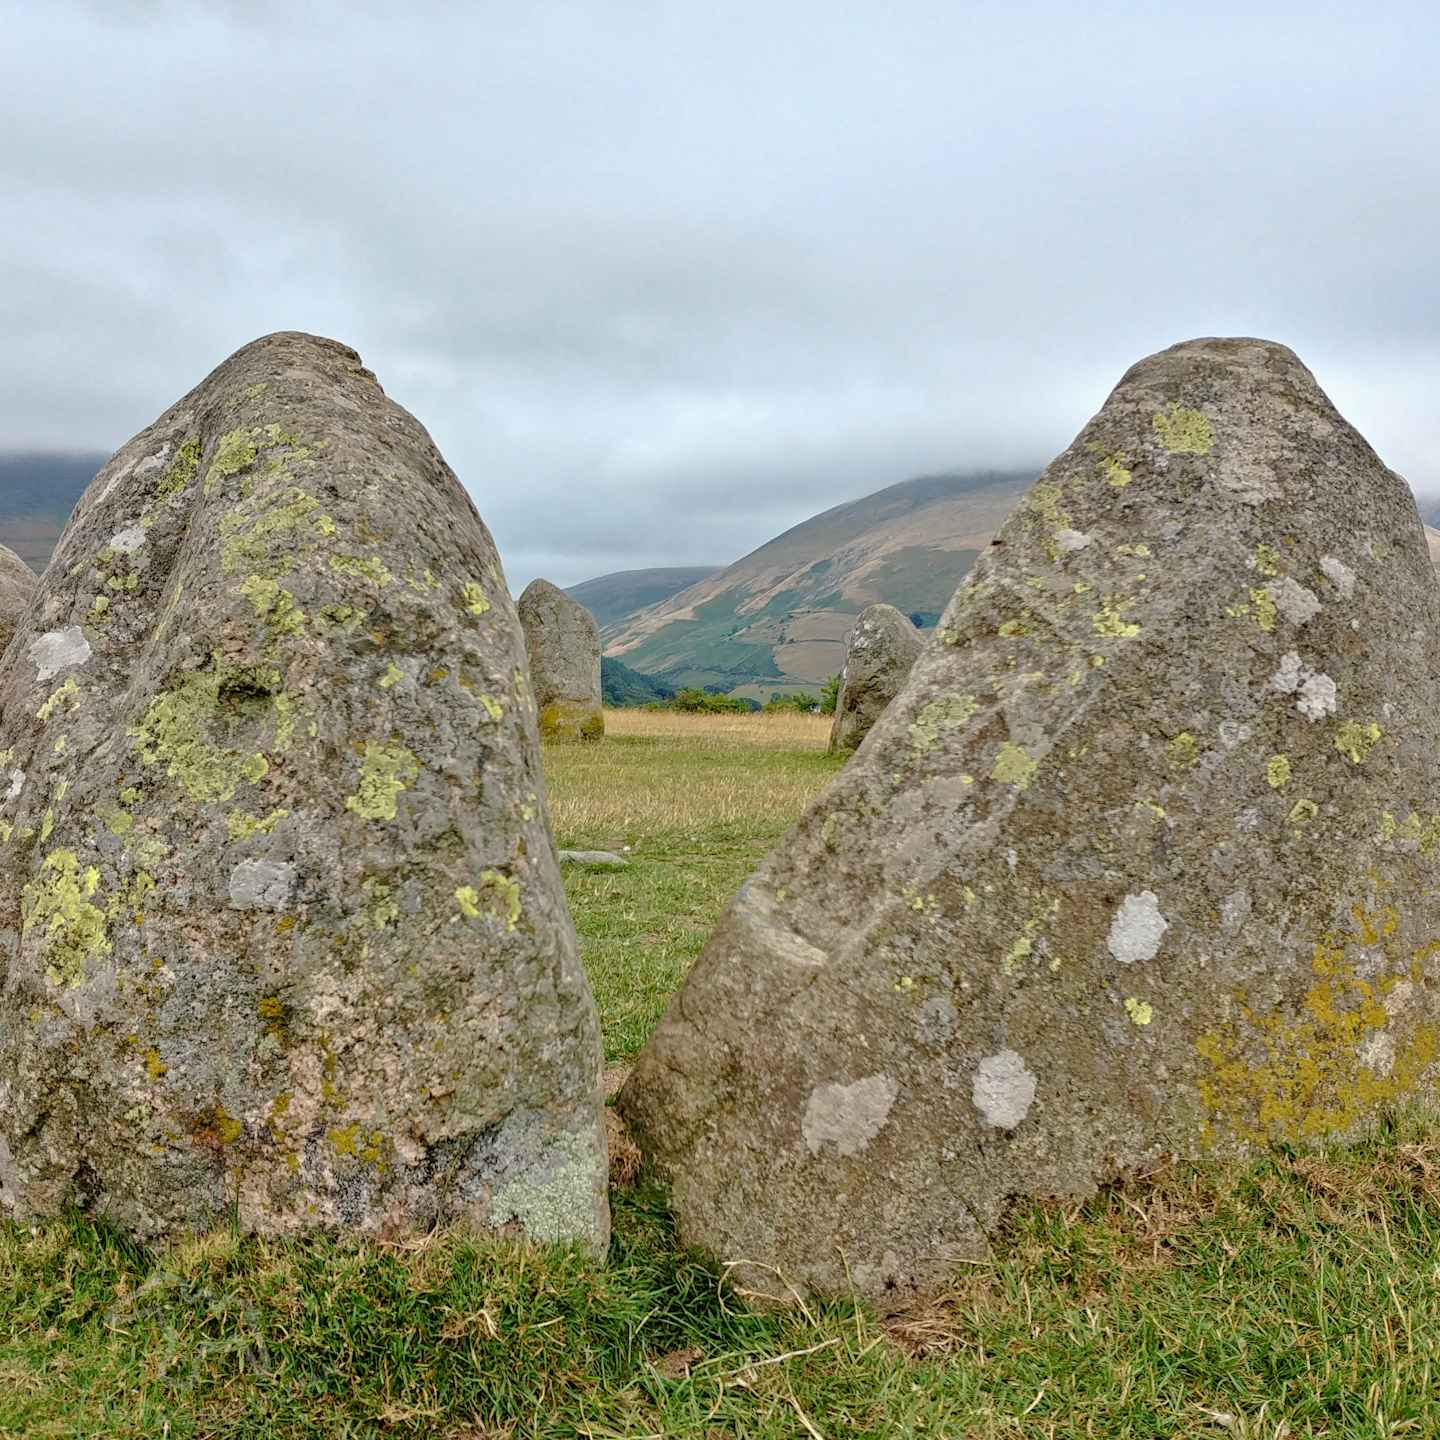 I only had my phone and 15 minutes, so how did I get some nice photos of Castlerigg Stone Circle in the Lake District? Photography tips and visitor info. Taking photos at Castlerigg Stone Circle in the Lake District on Falcondale Life blog. Image description: Stones at Castlerigg.